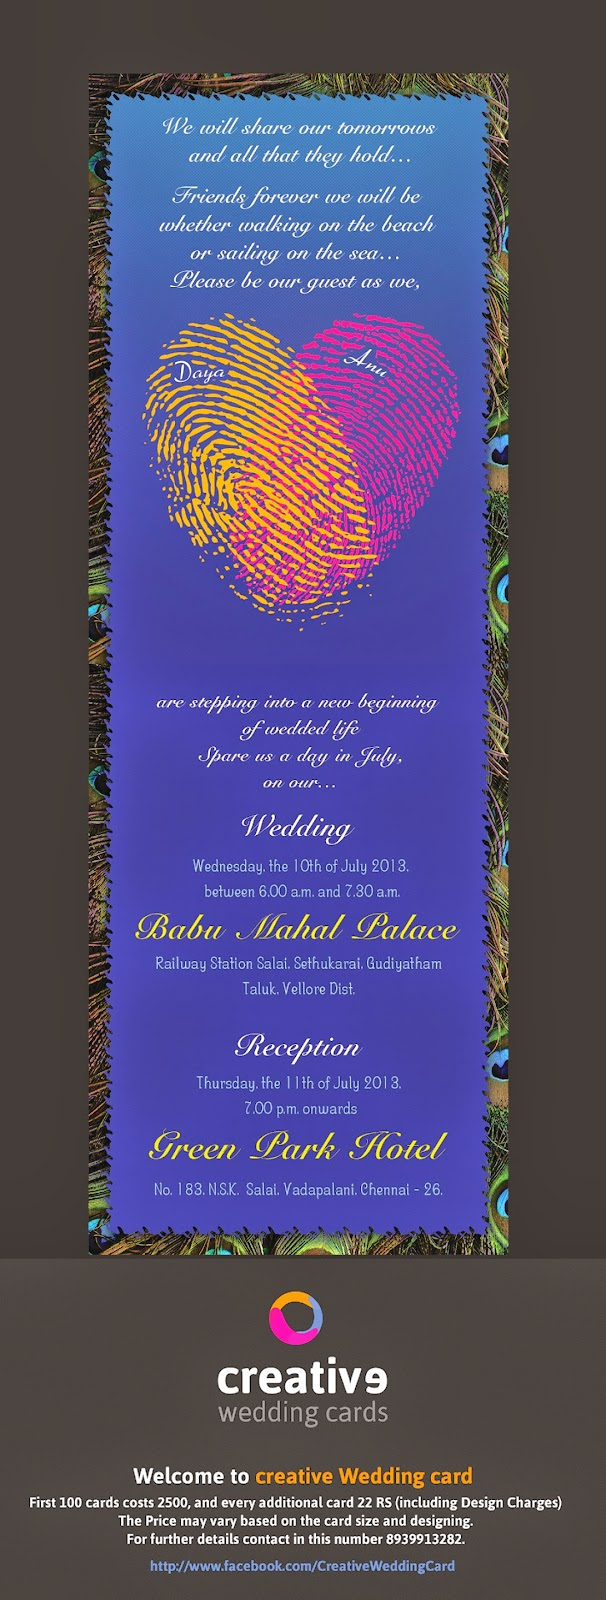 Creative Wedding Cards Madhesh Arthanarisamy Creative Wedding